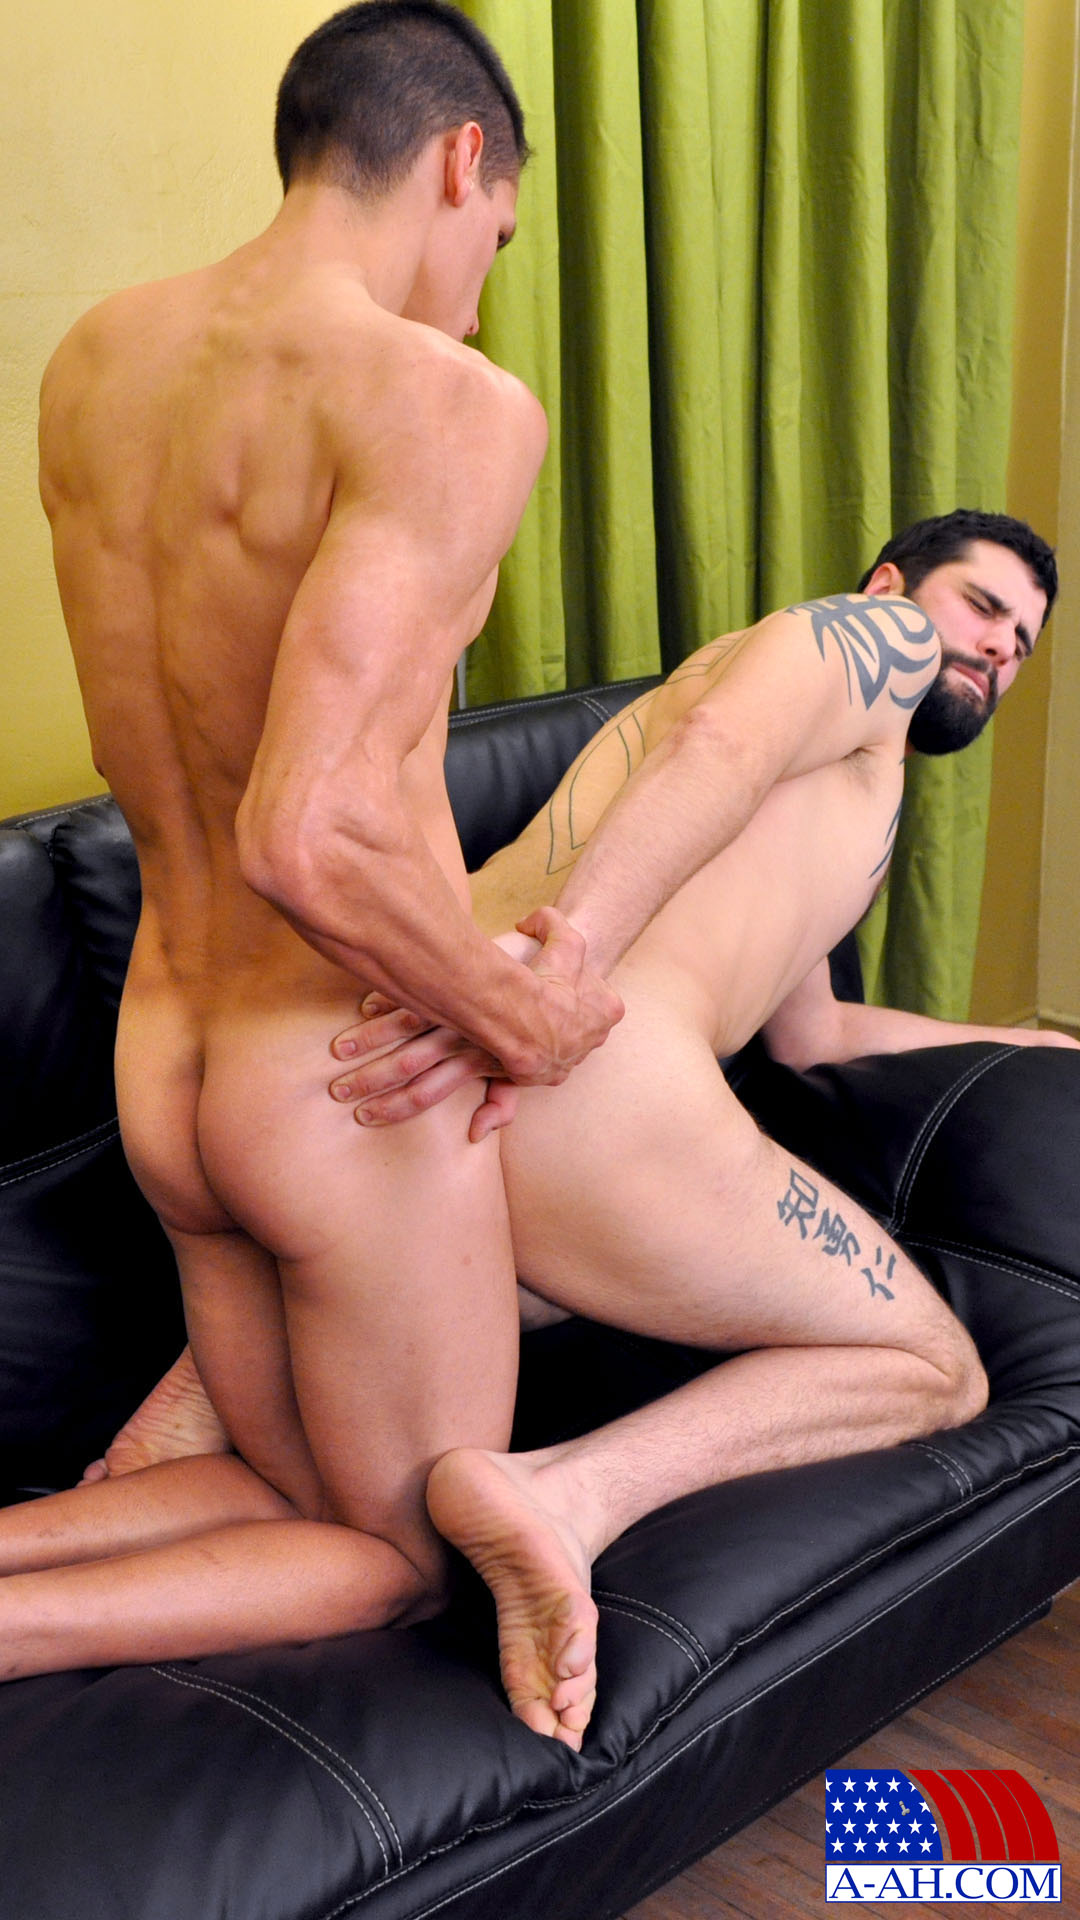 private antonio american heroes gay video